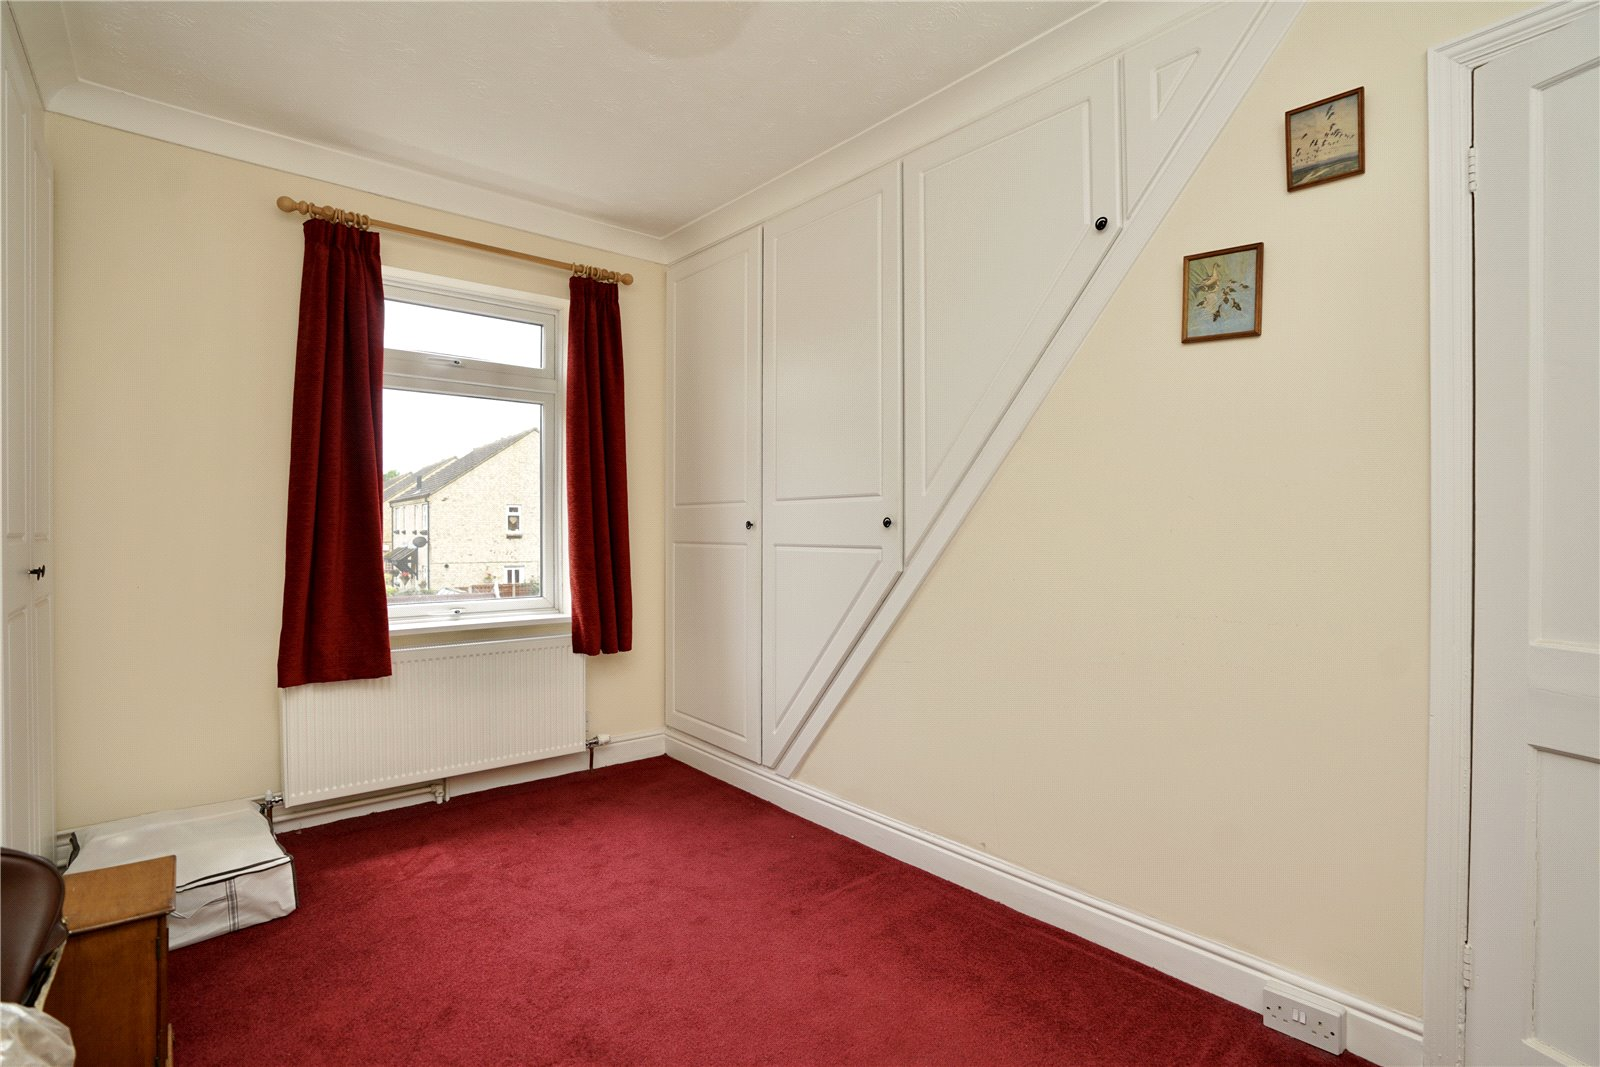 2 bed house for sale in Ackerman Street, Eaton Socon  - Property Image 7